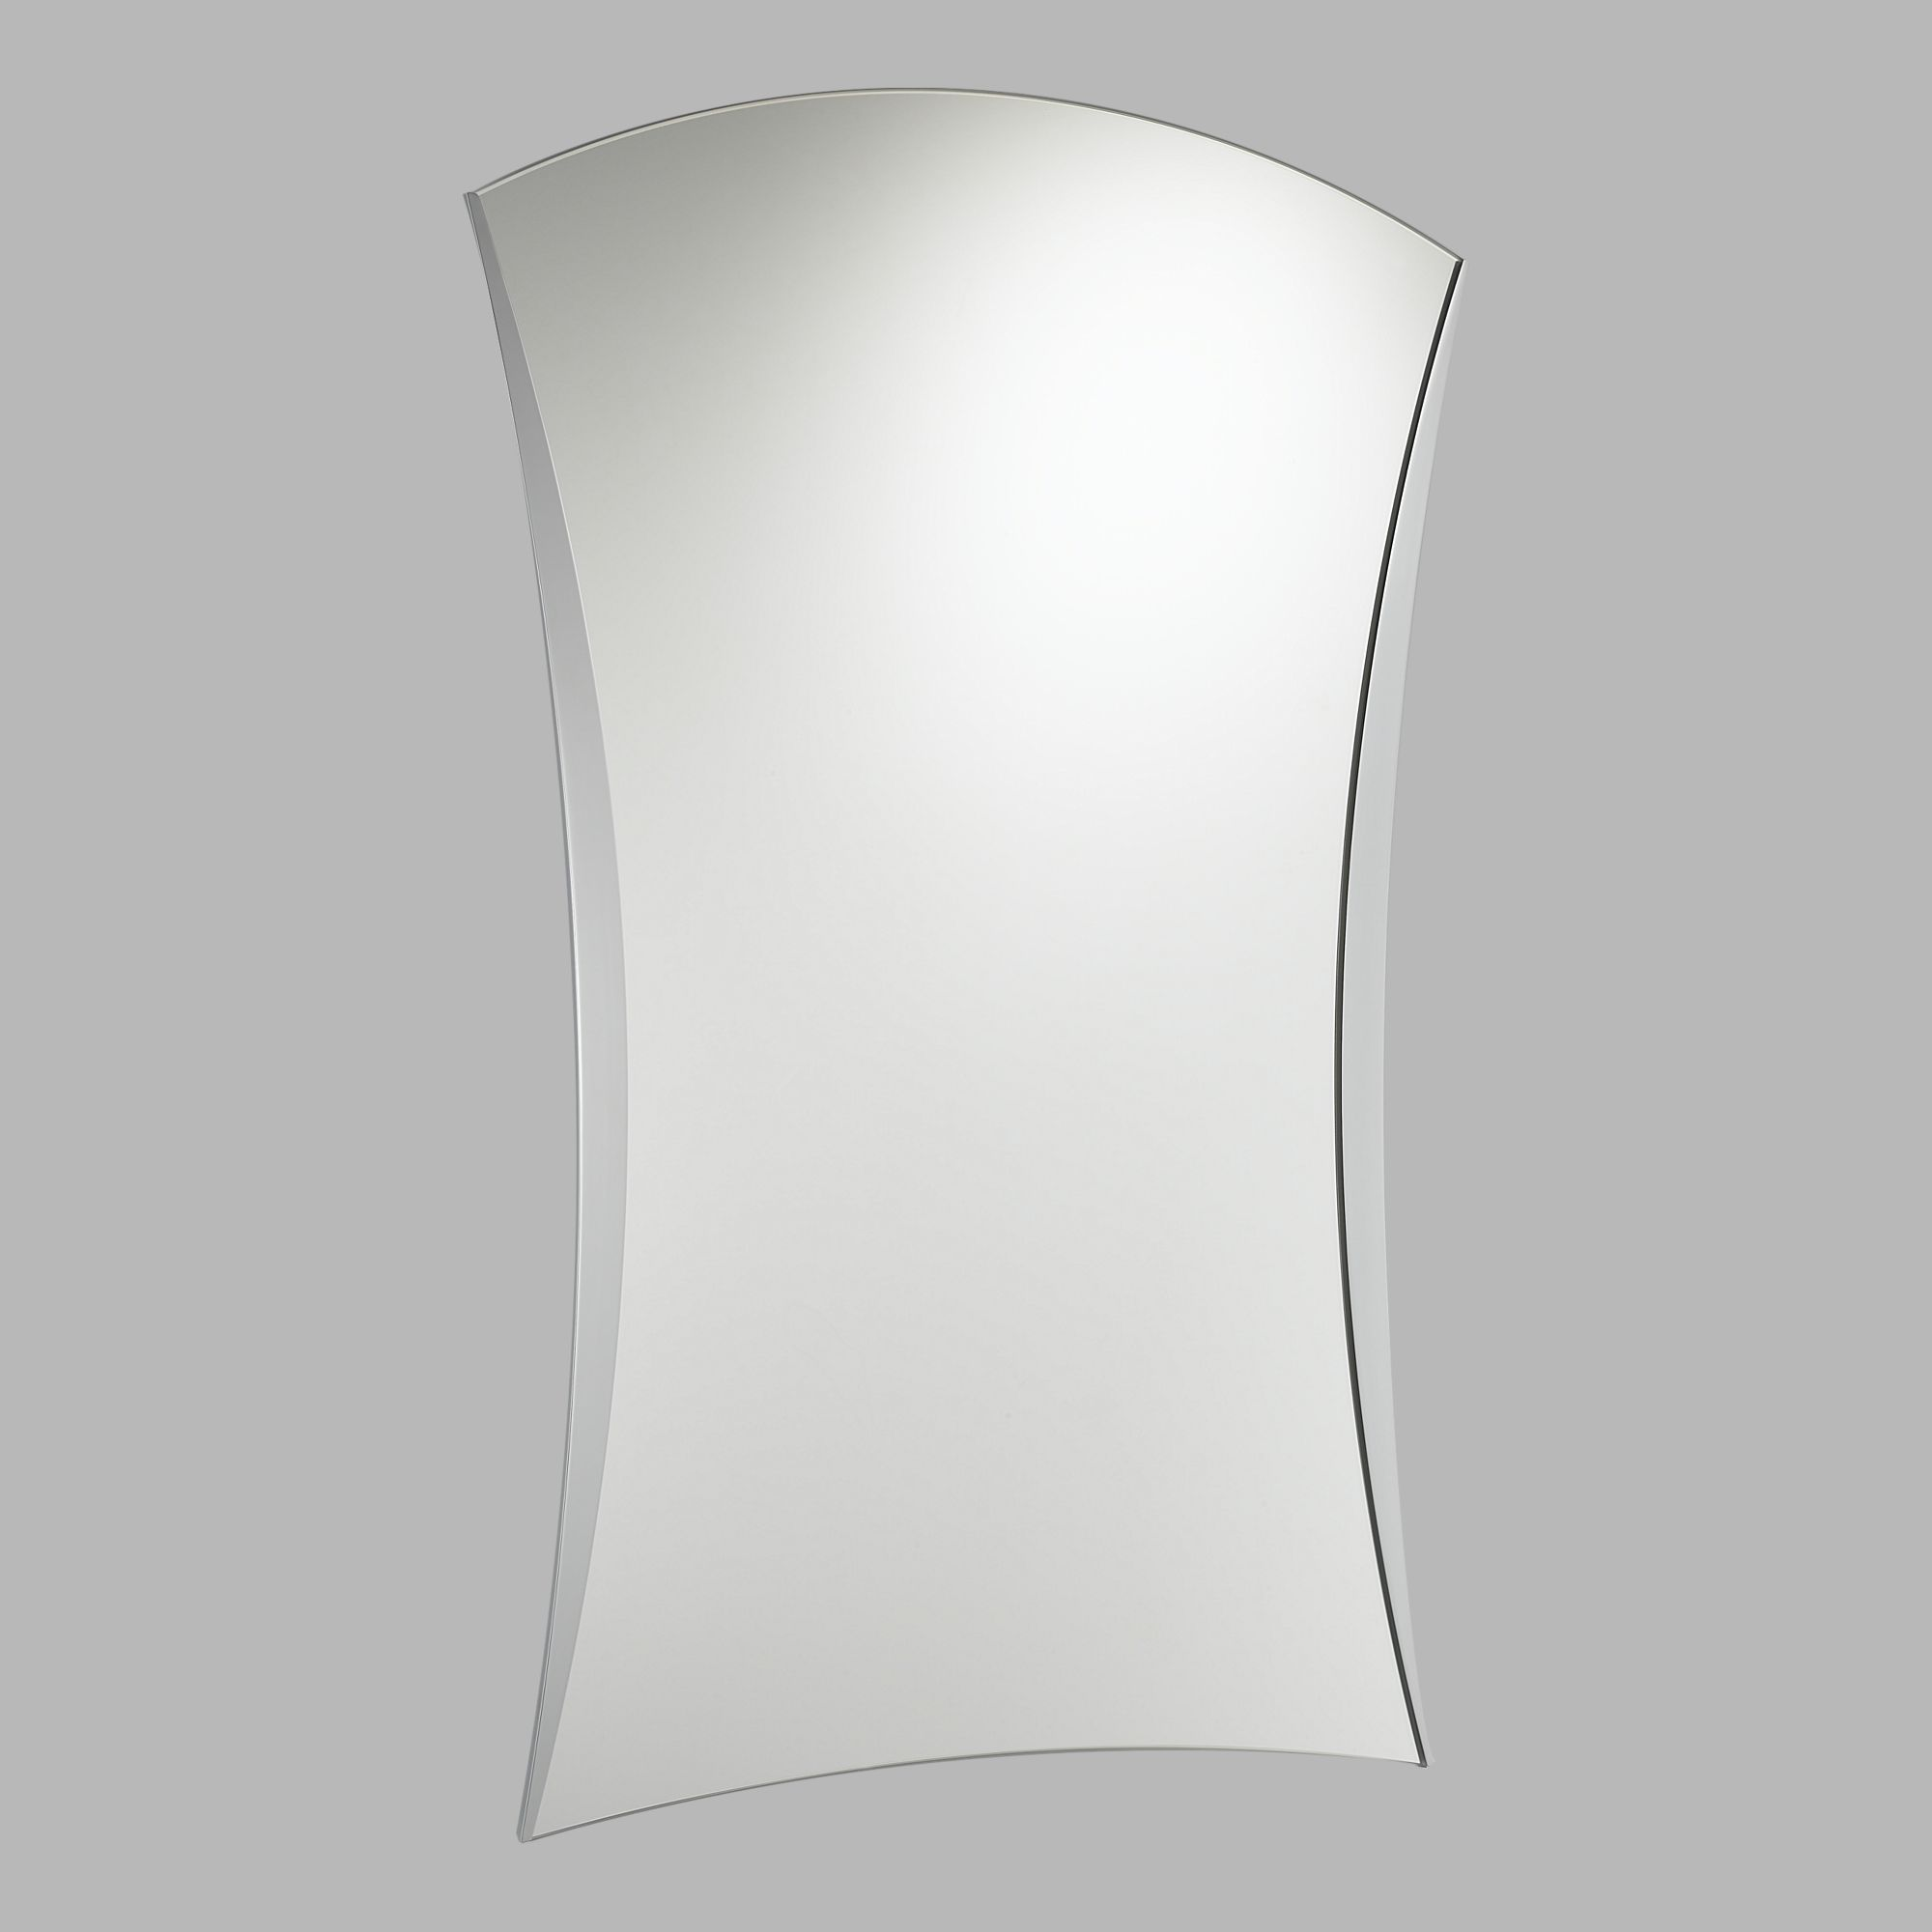 Cheap wall mirrors for sale buy a vanity mirror online for Cheap wall mirrors